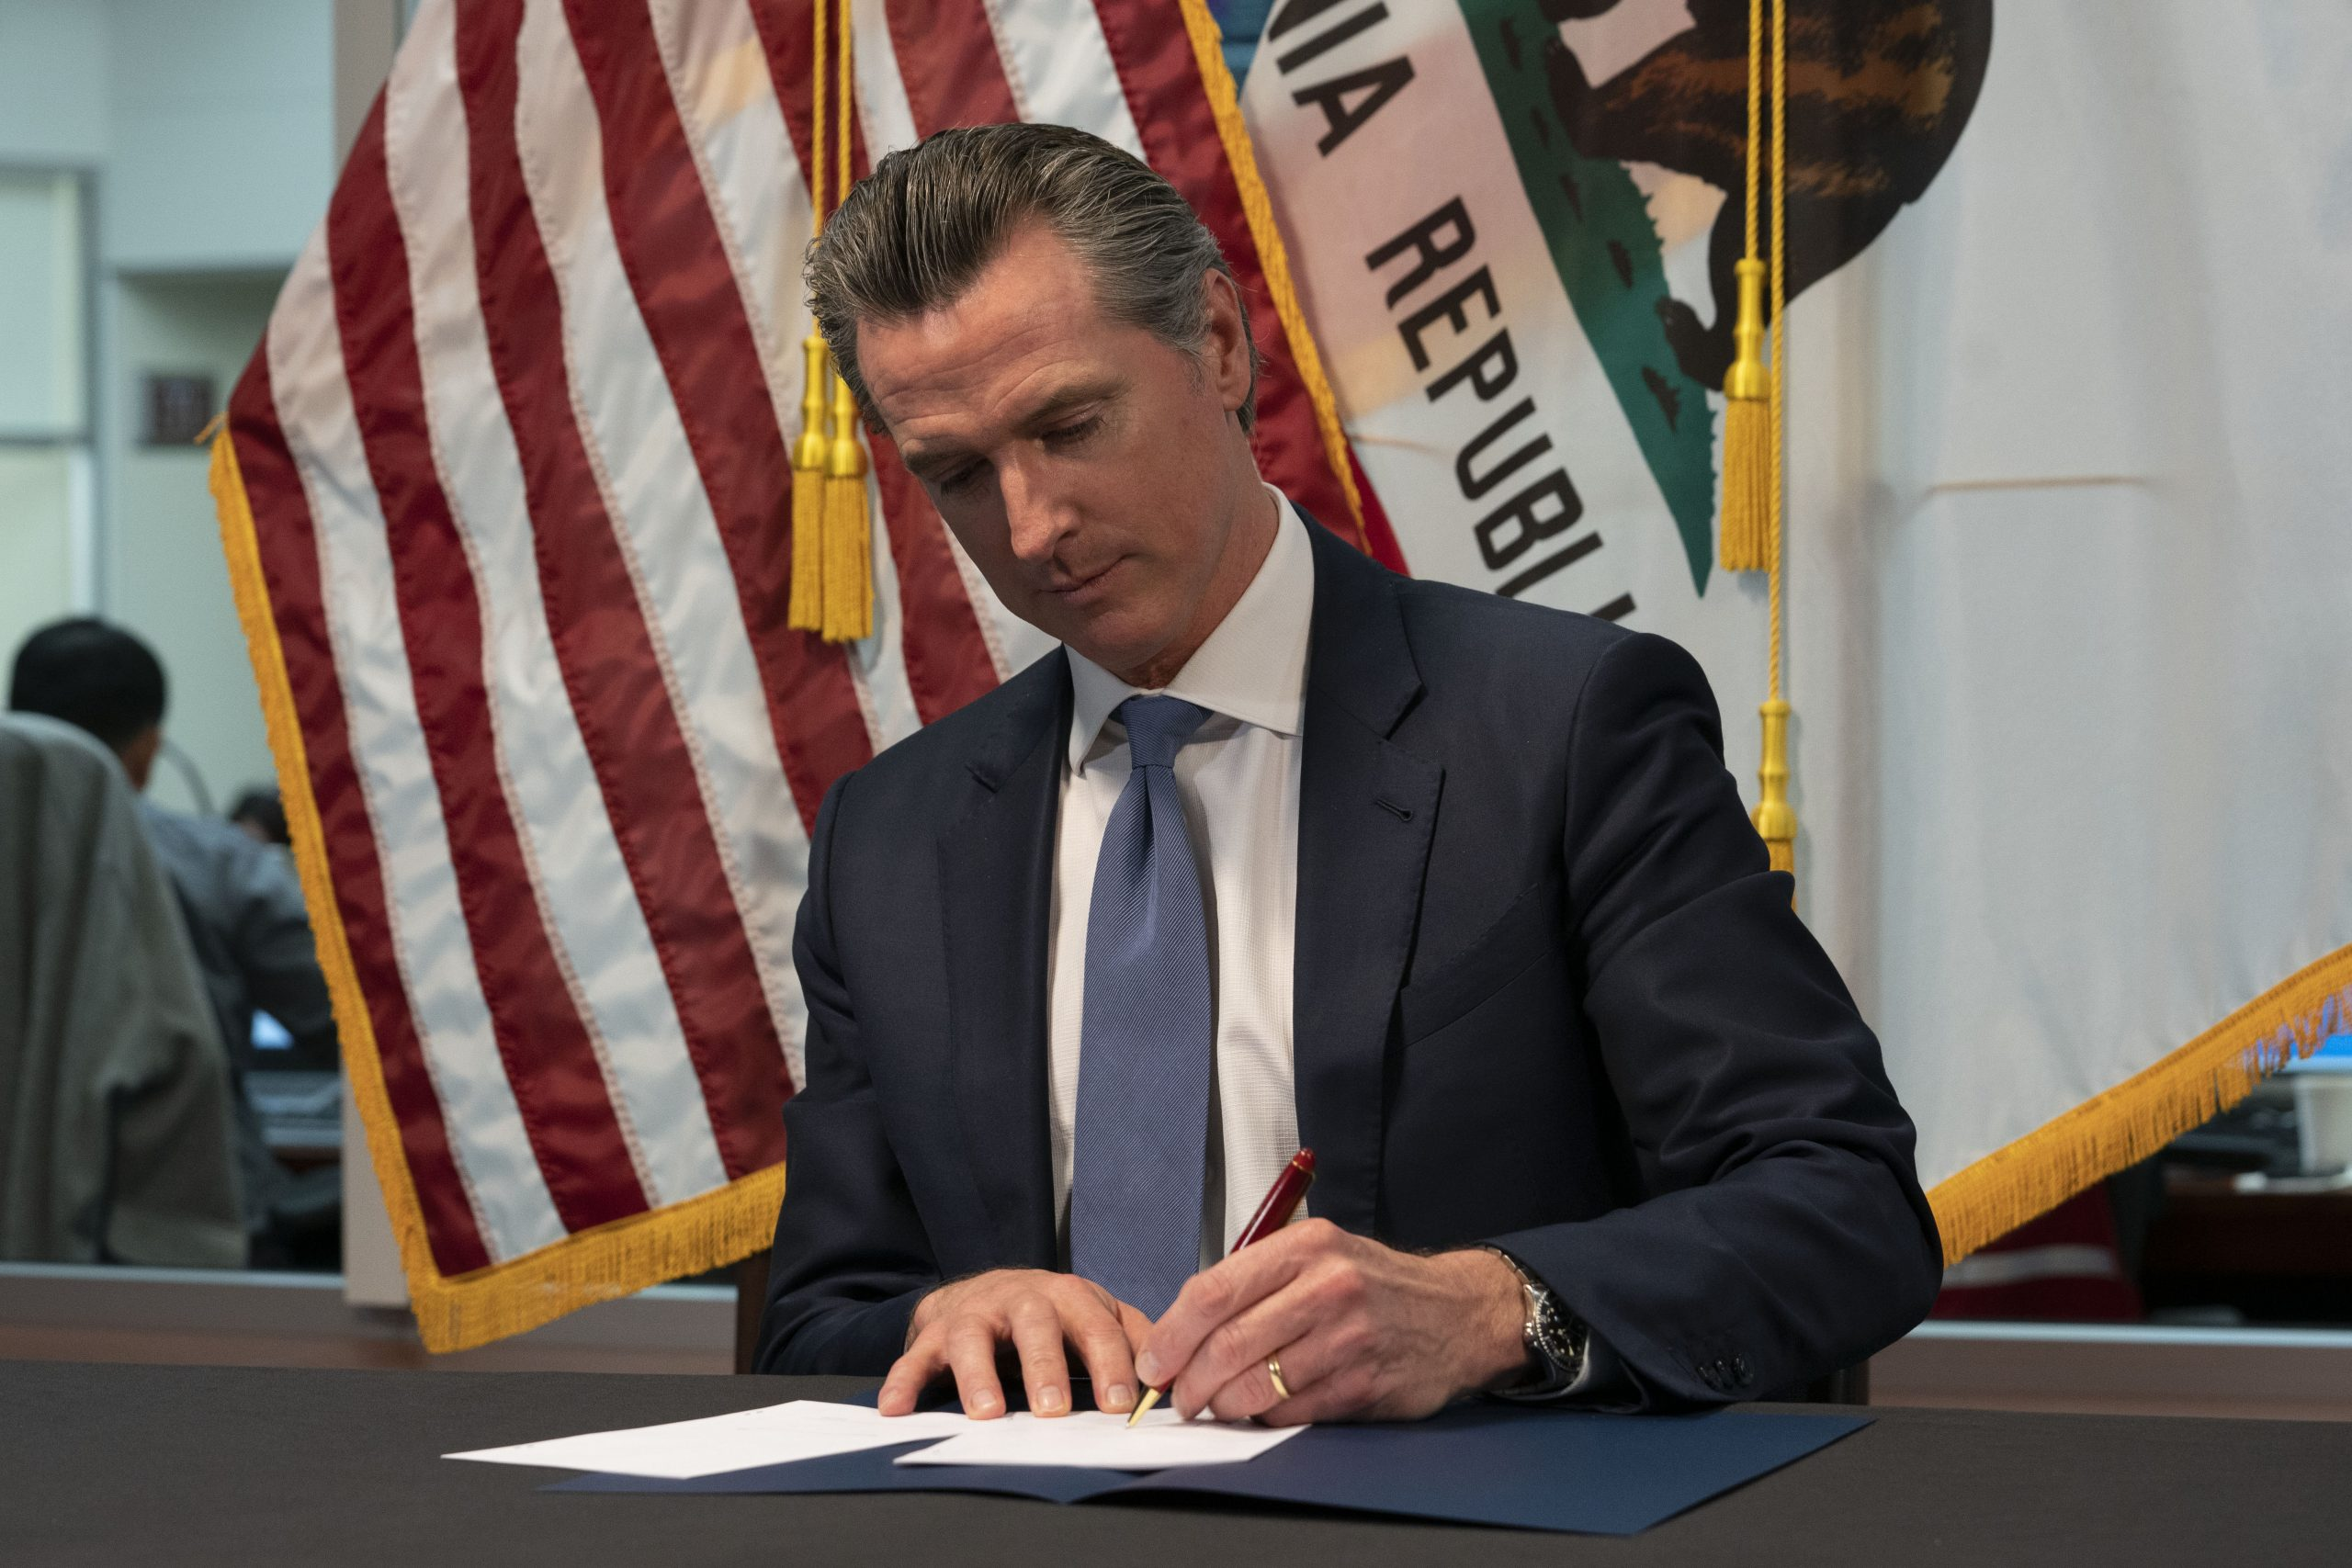 Gavin christopher newsom (born october 10, 1967) is an american politician and businessman serving as the 40th governor of california since january 2019. Governor Newsom Issues Executive Order on Judicial Council